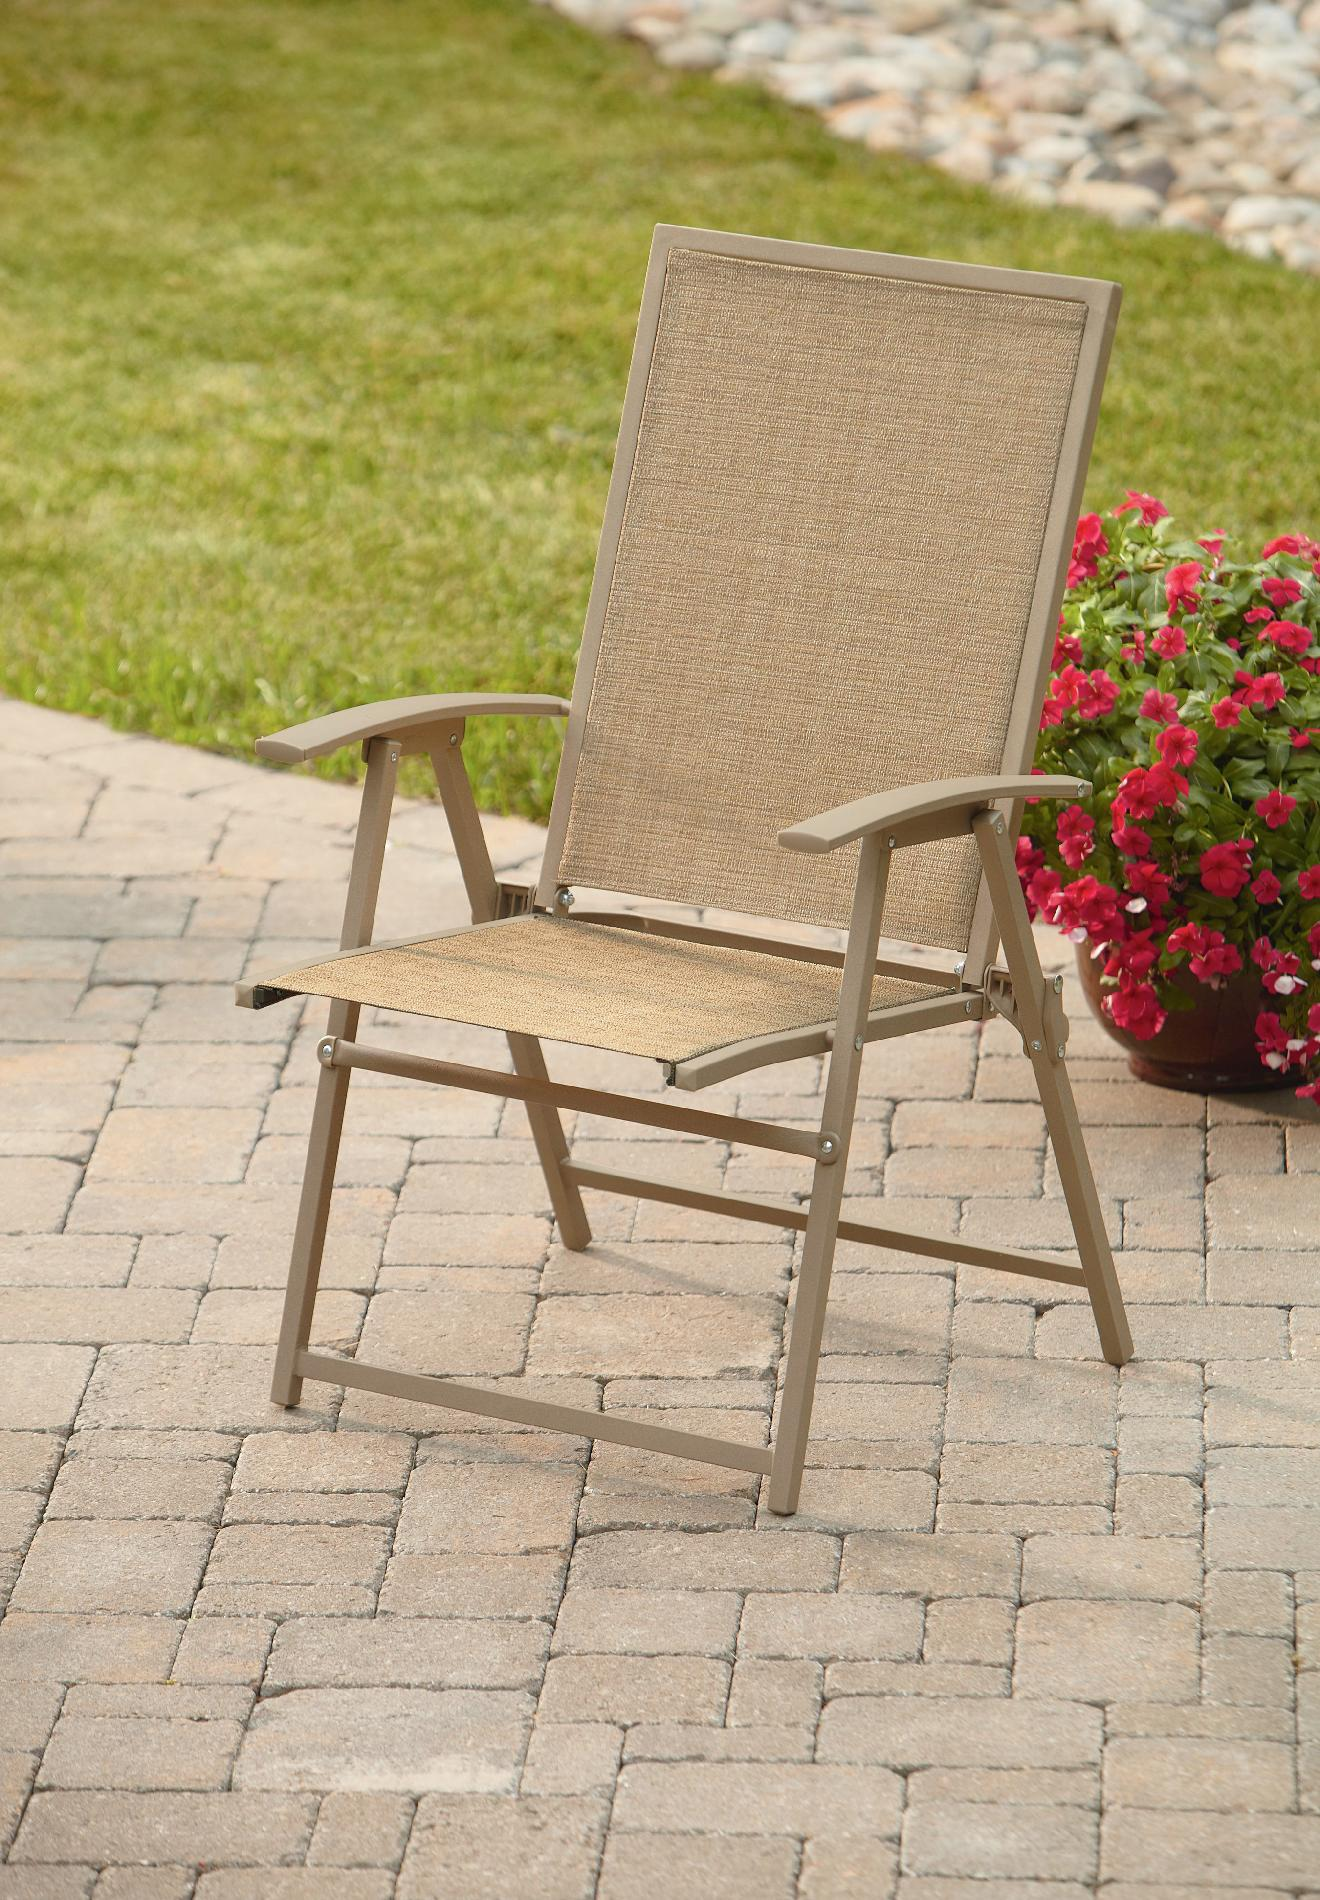 sun lounge chairs kmart outdoor circle chair jaclyn smith eastwood sling living patio